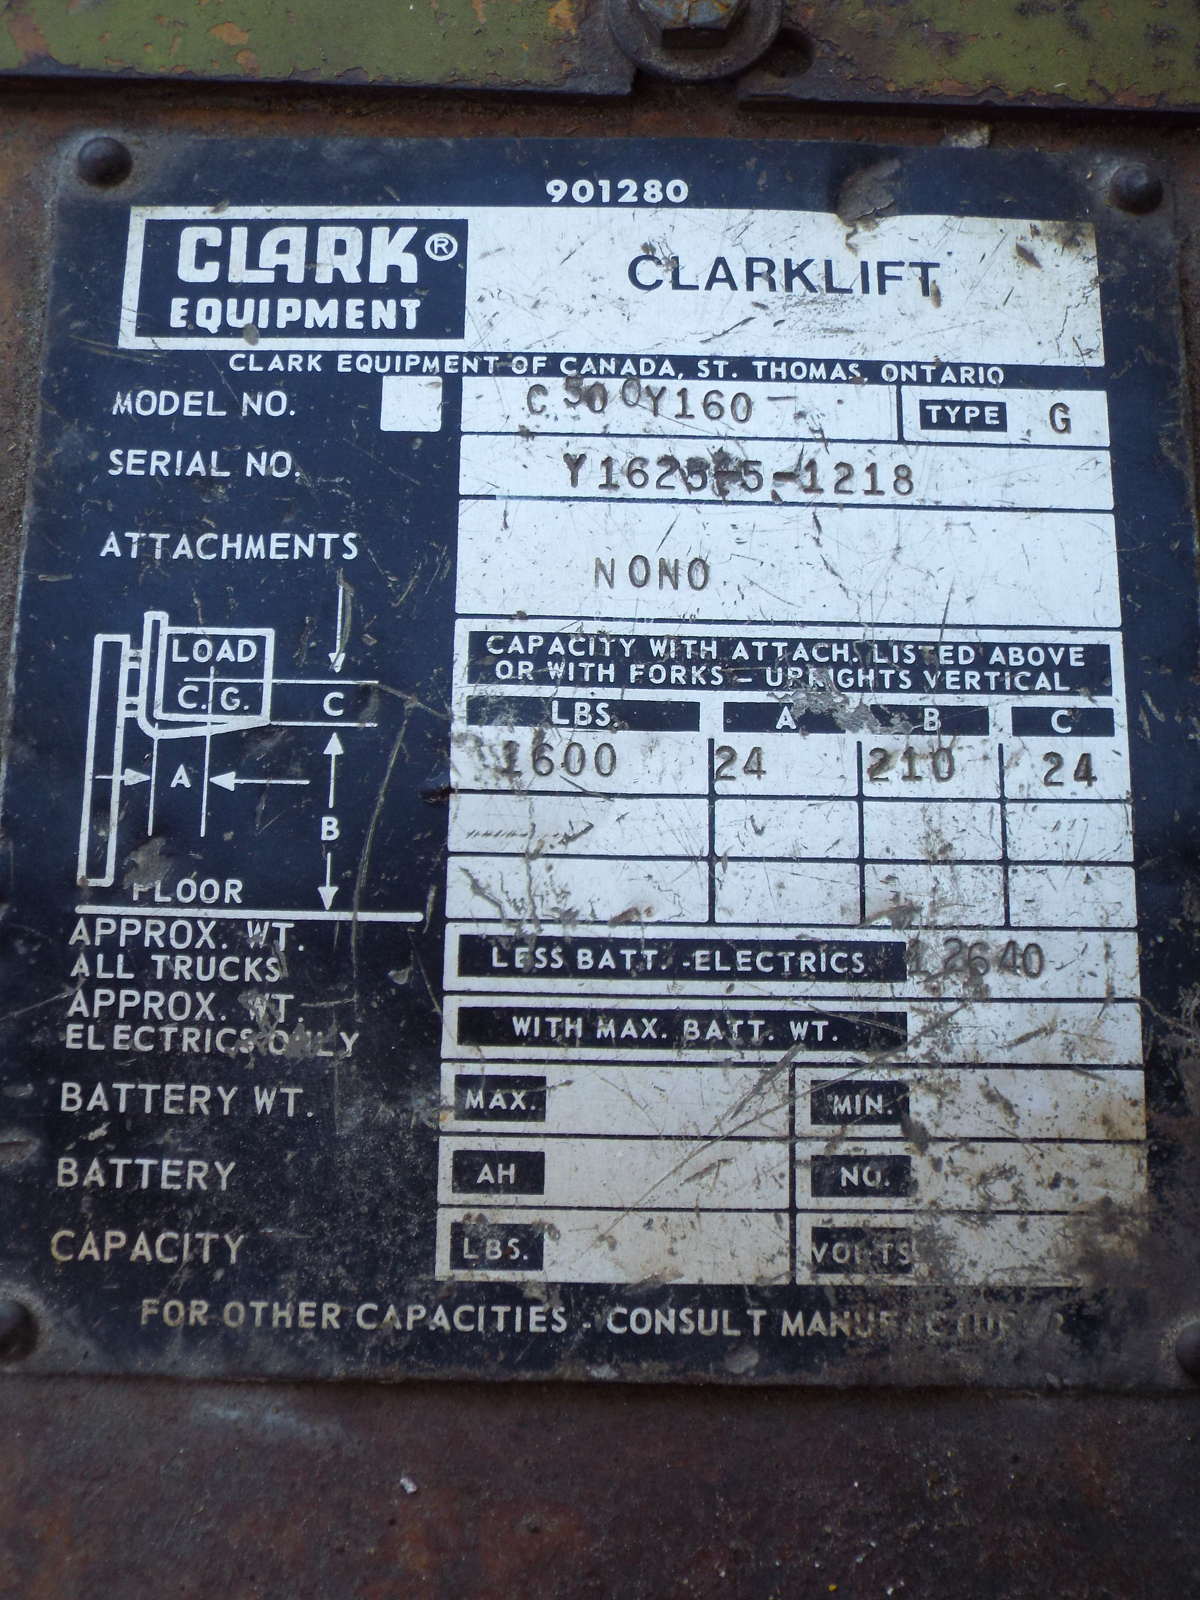 """CLARK C500Y160 LPG OUTDOOR FORKLIFT WITH 16,000 LB. CAPACITY, 210"""" VERTICAL LIFT, PNEUMATIC TIRES - Image 8 of 8"""